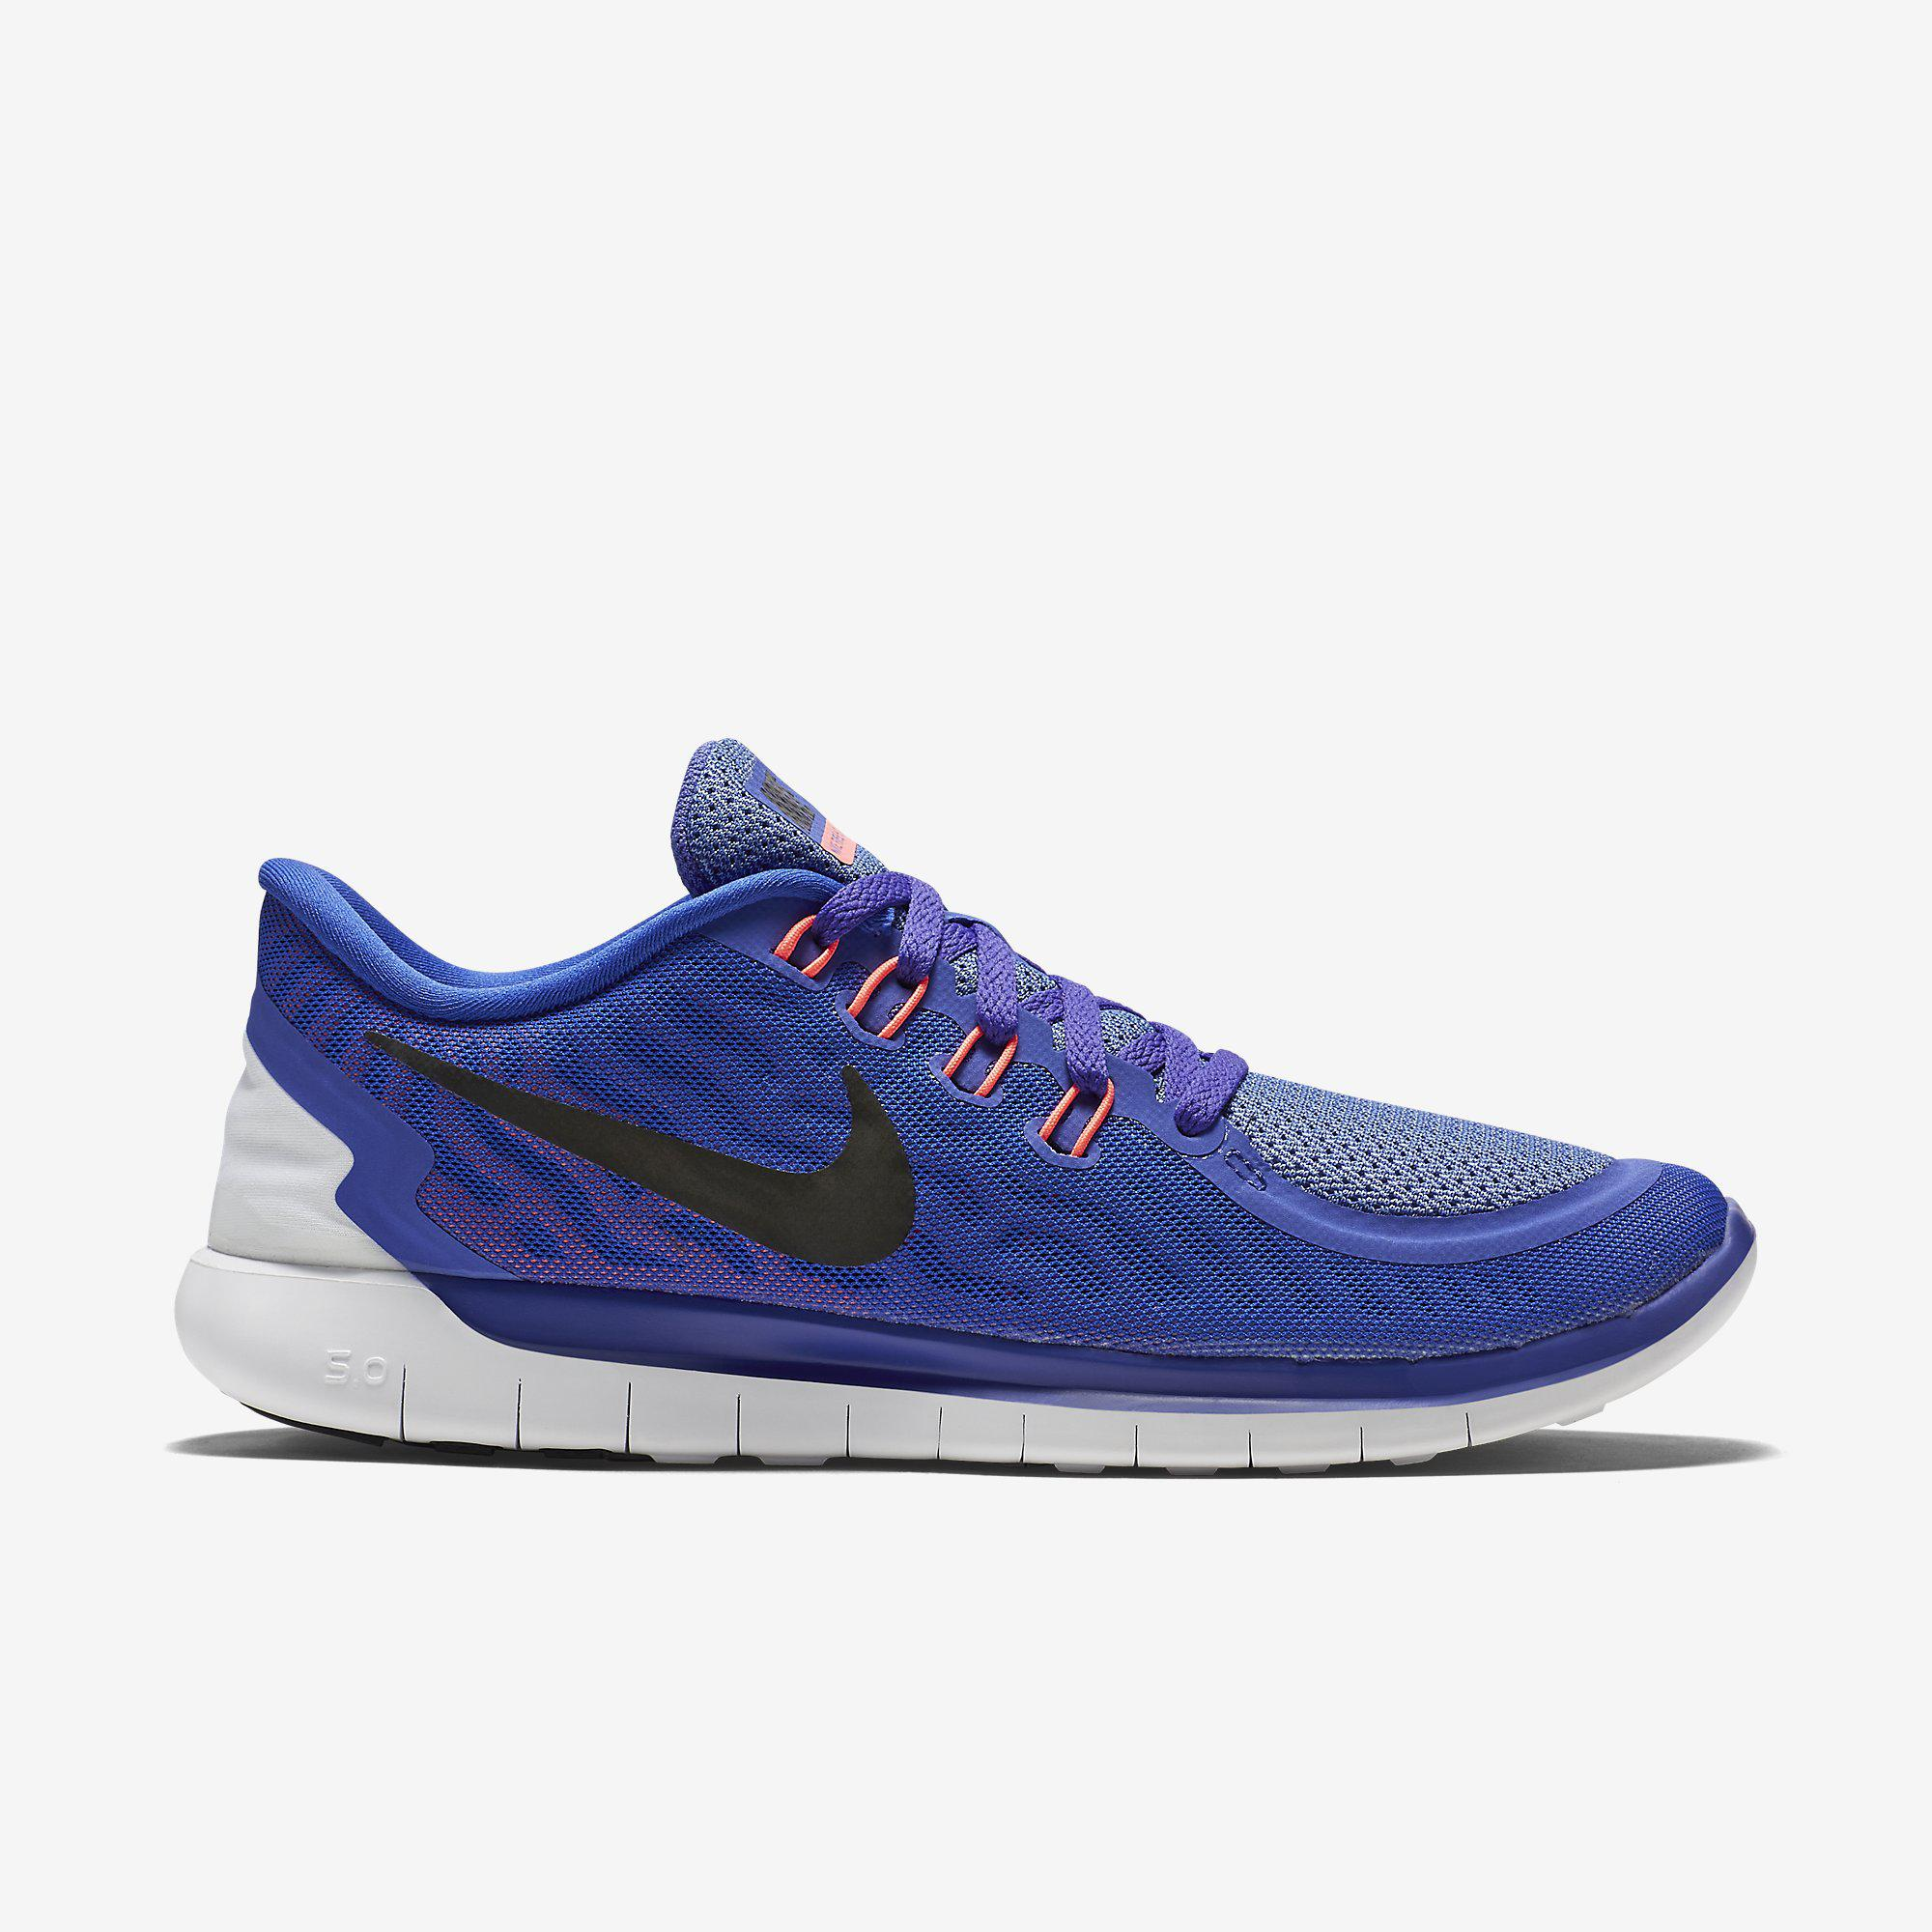 Nike Womens Free 5.0+ Running Shoes - Persian Violet